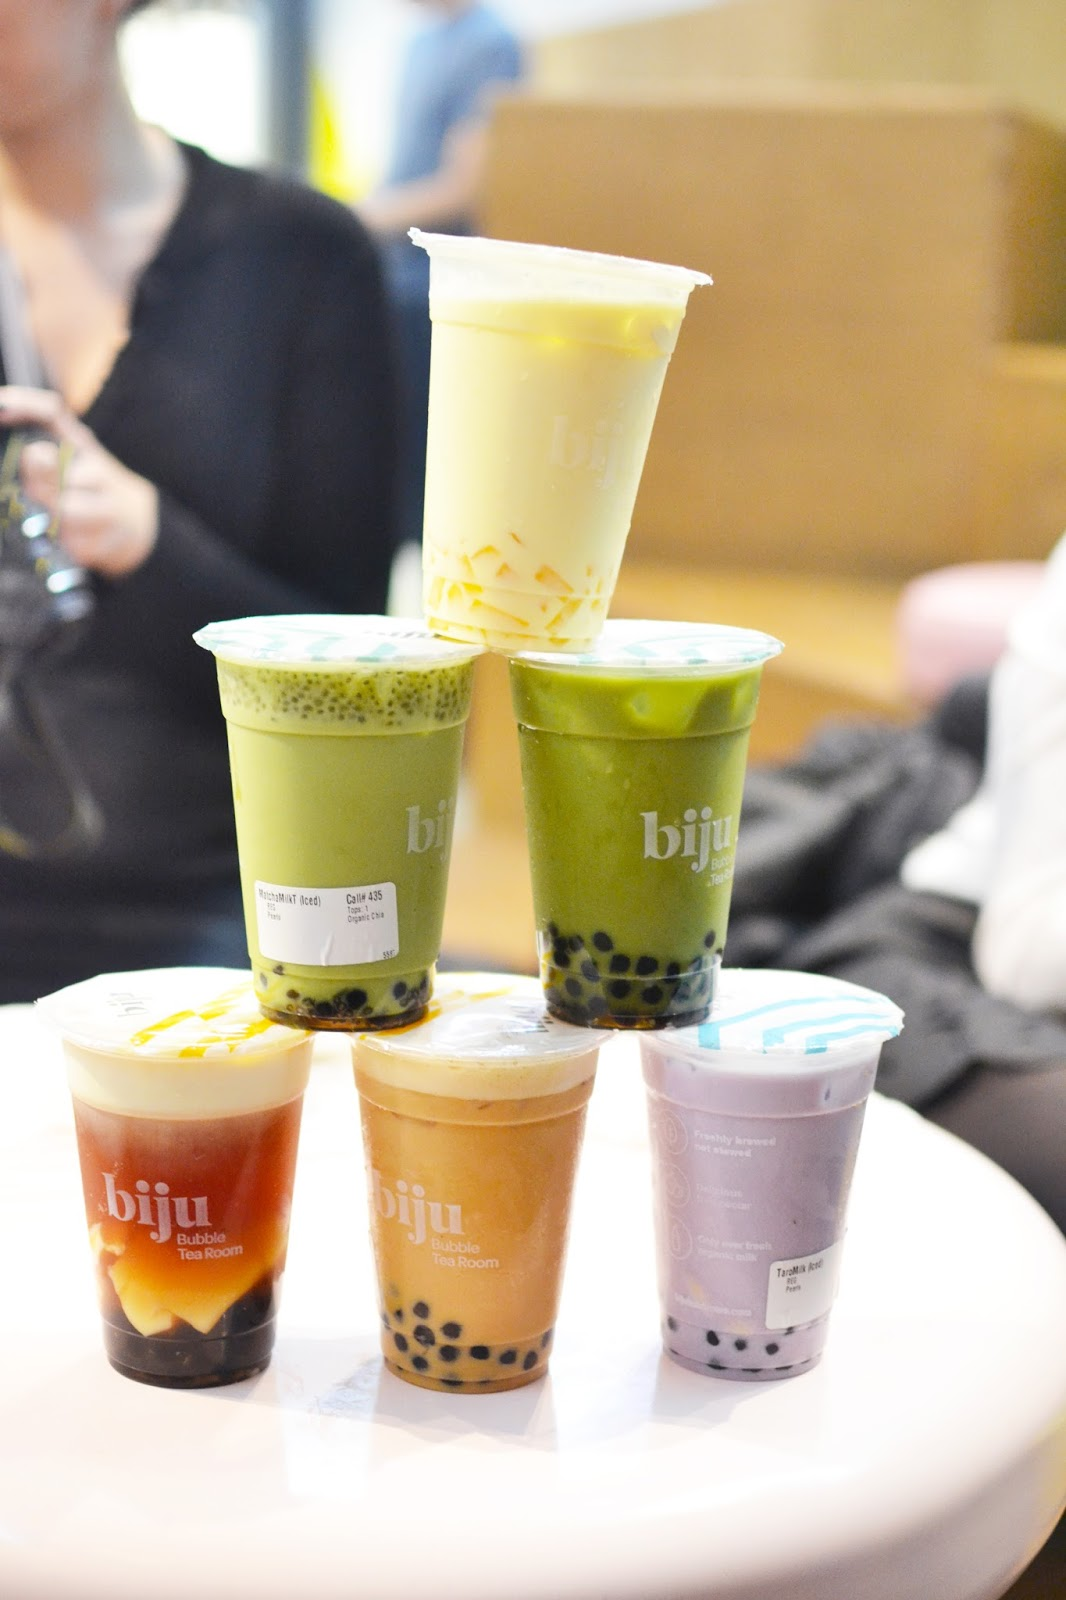 biju bubble tea, london bubble tea cafe